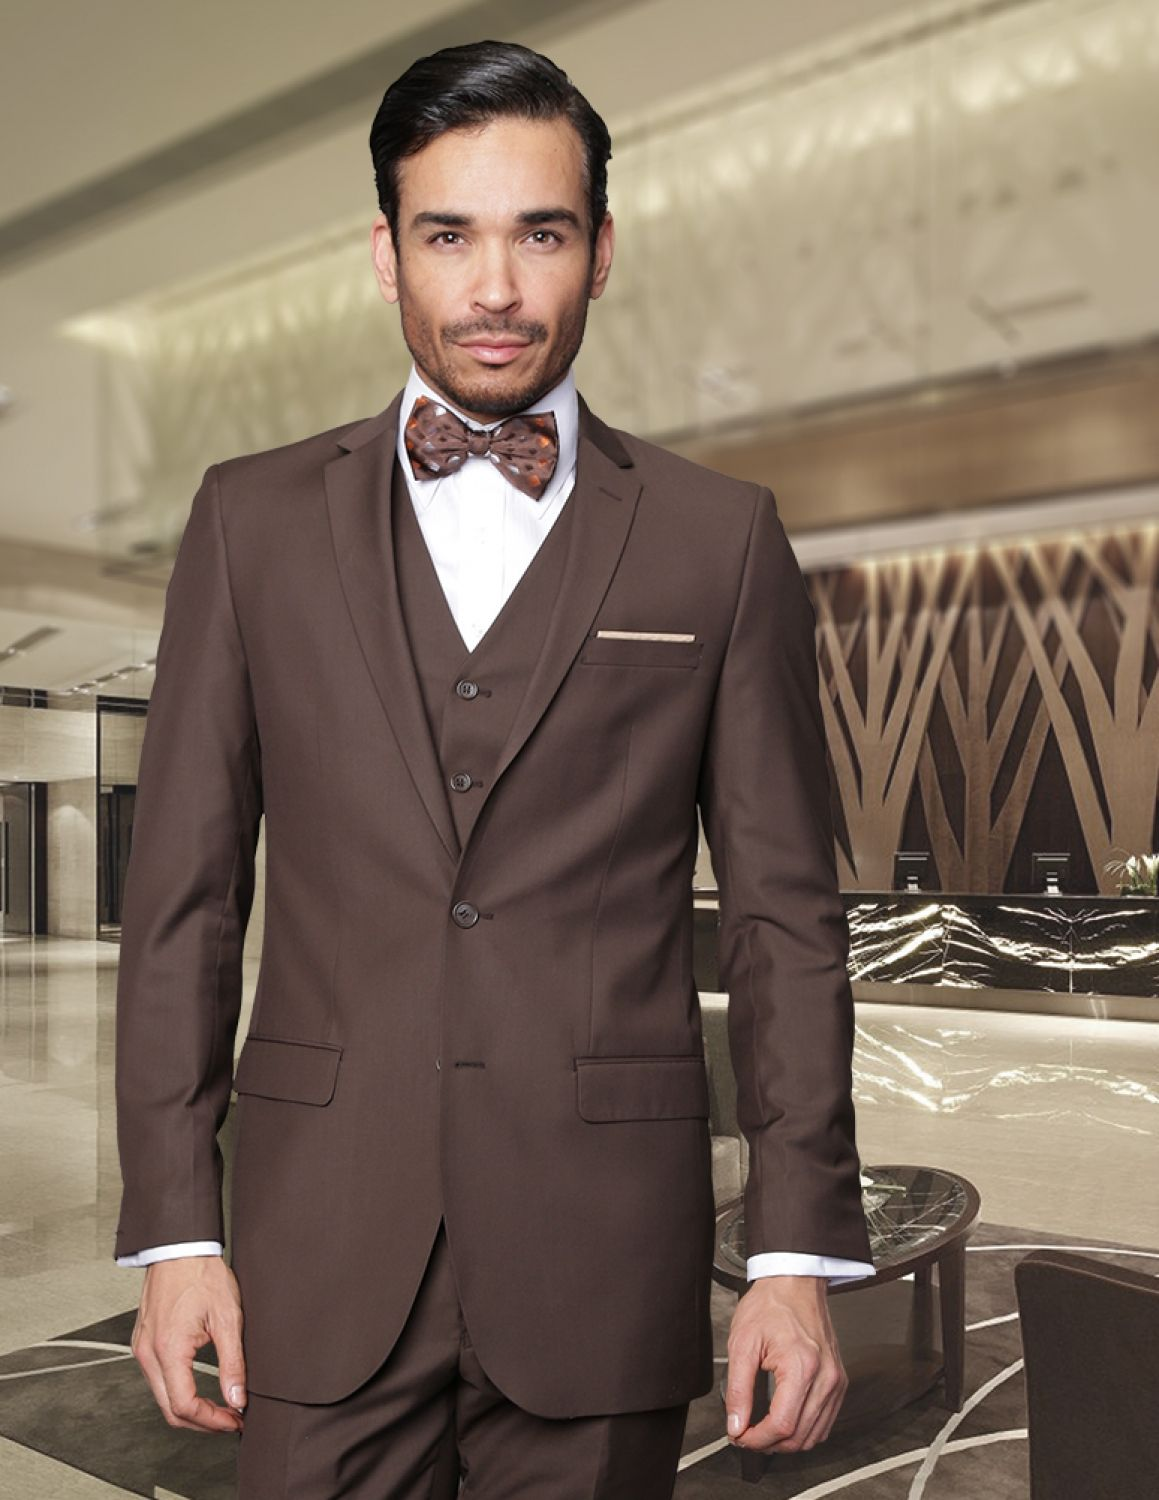 d27d9d67d05c LORENZO BROWN EXTRA SLIM FIT SUPER 150'S 3PC 2 BUTTON WOOL SUIT WITH LOW  VEST EXTRA FINE ITALIAN MADE.